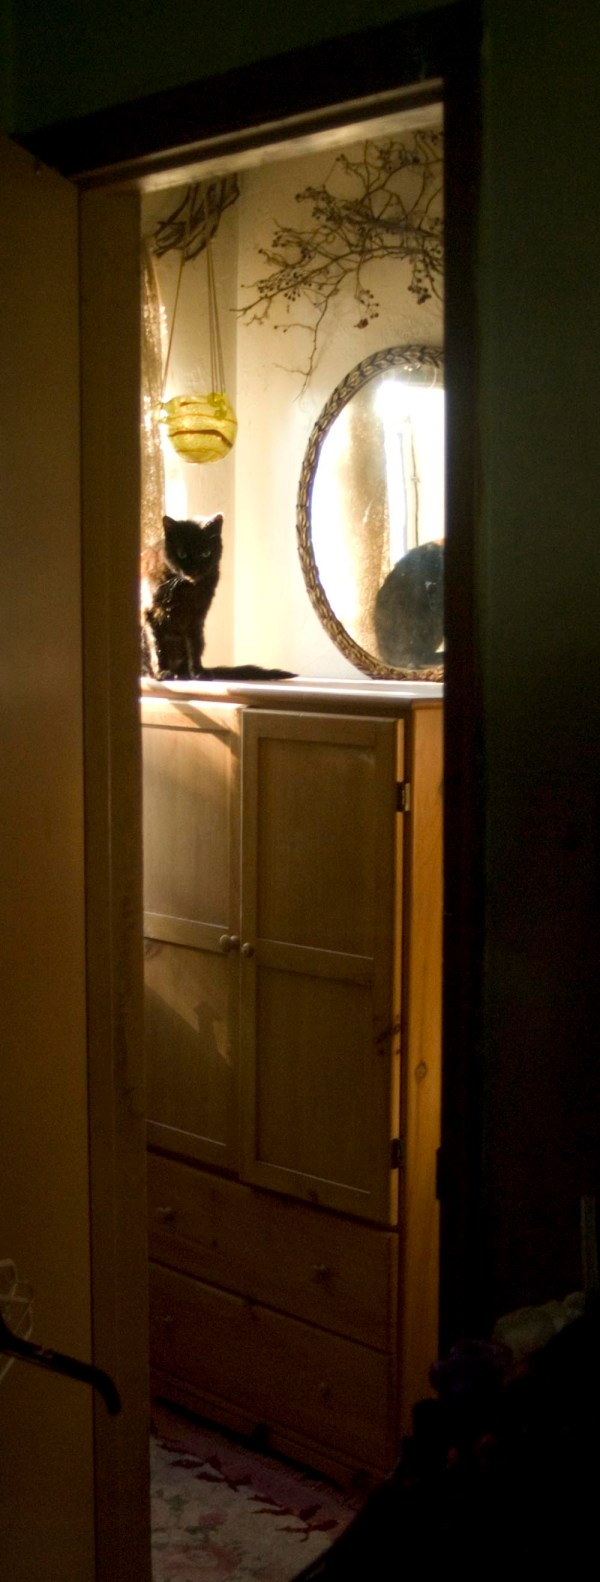 Black cat watching through doorway